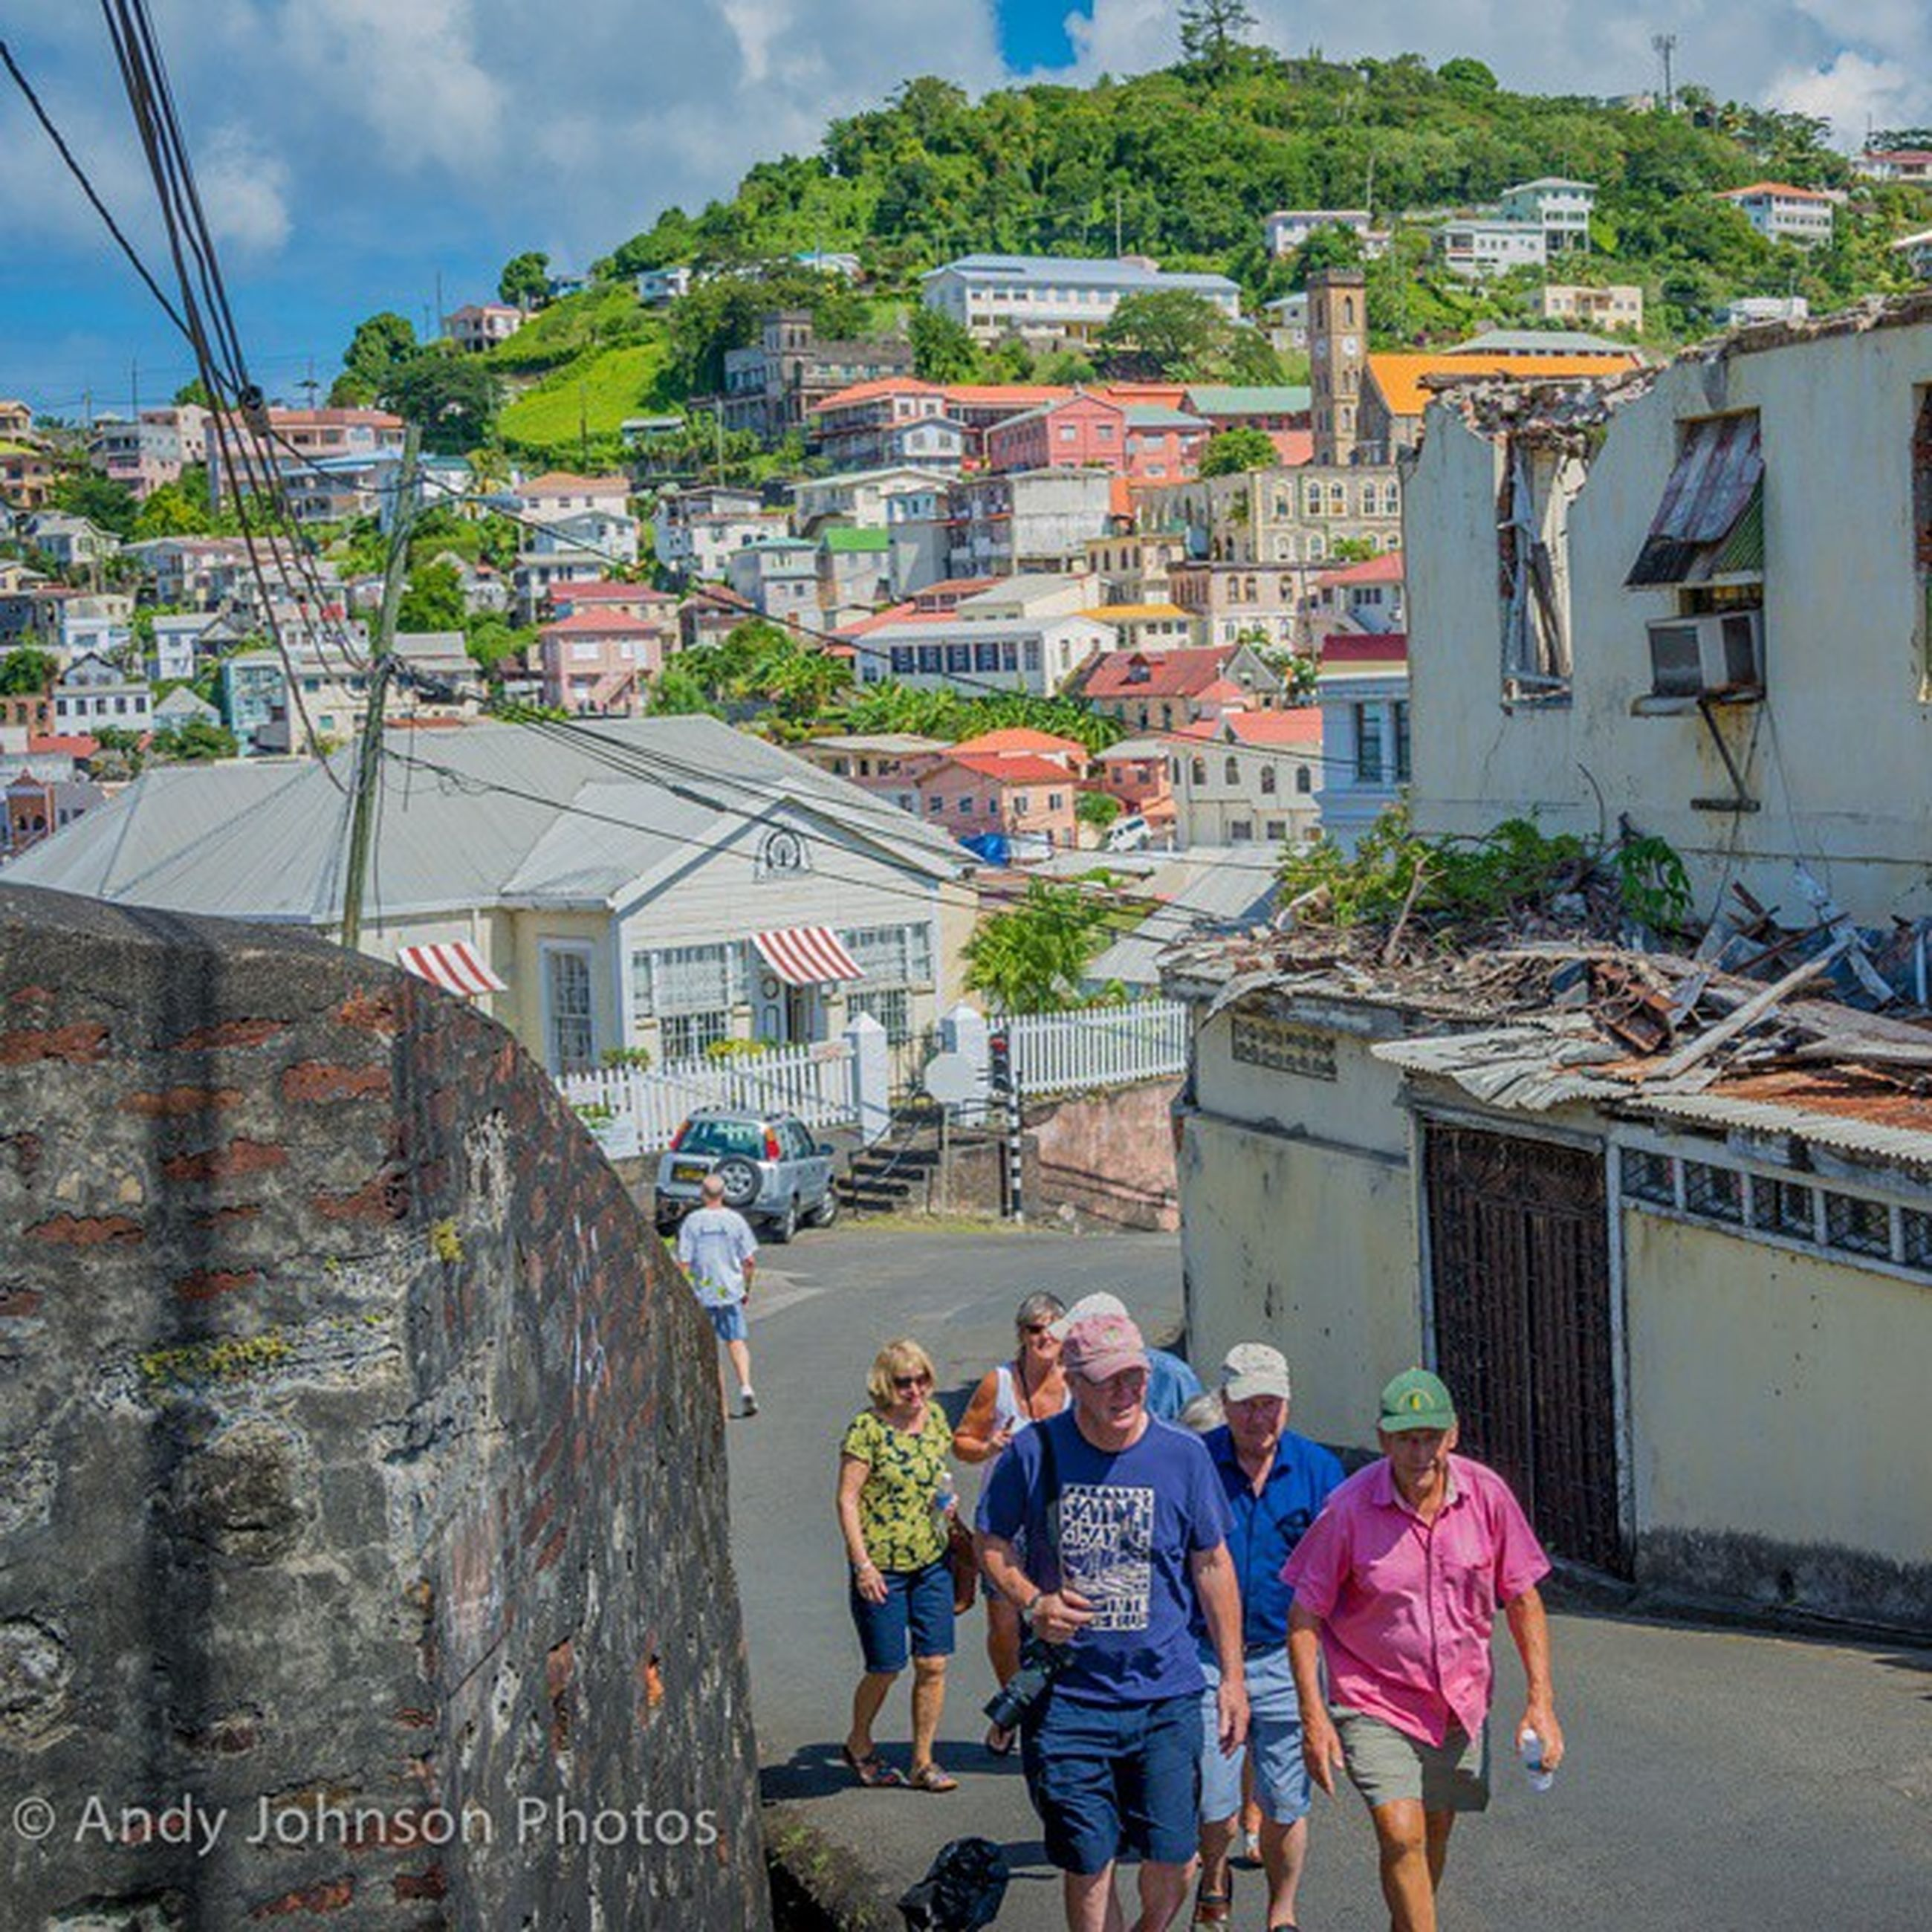 building exterior, architecture, built structure, lifestyles, men, person, leisure activity, walking, large group of people, sky, street, residential structure, residential building, rear view, city, casual clothing, town, house, city life